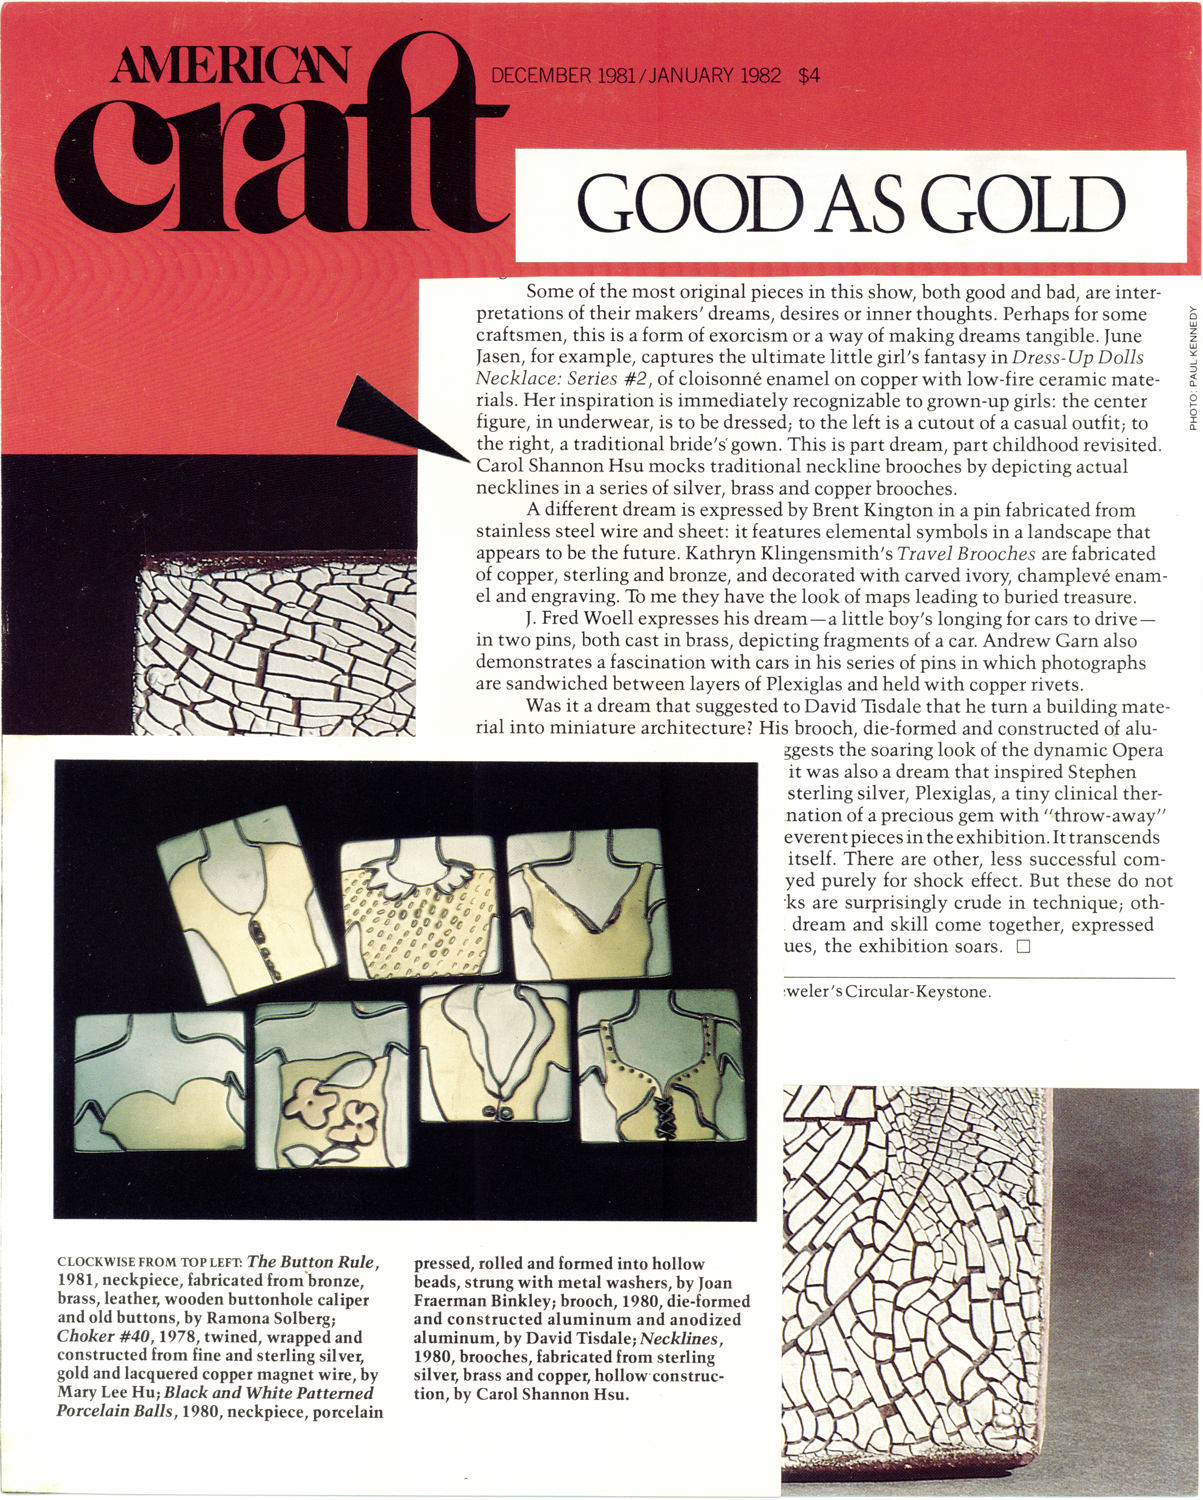 Good As Gold: Renwick Gallery Show, 1981, American Craft Magazine